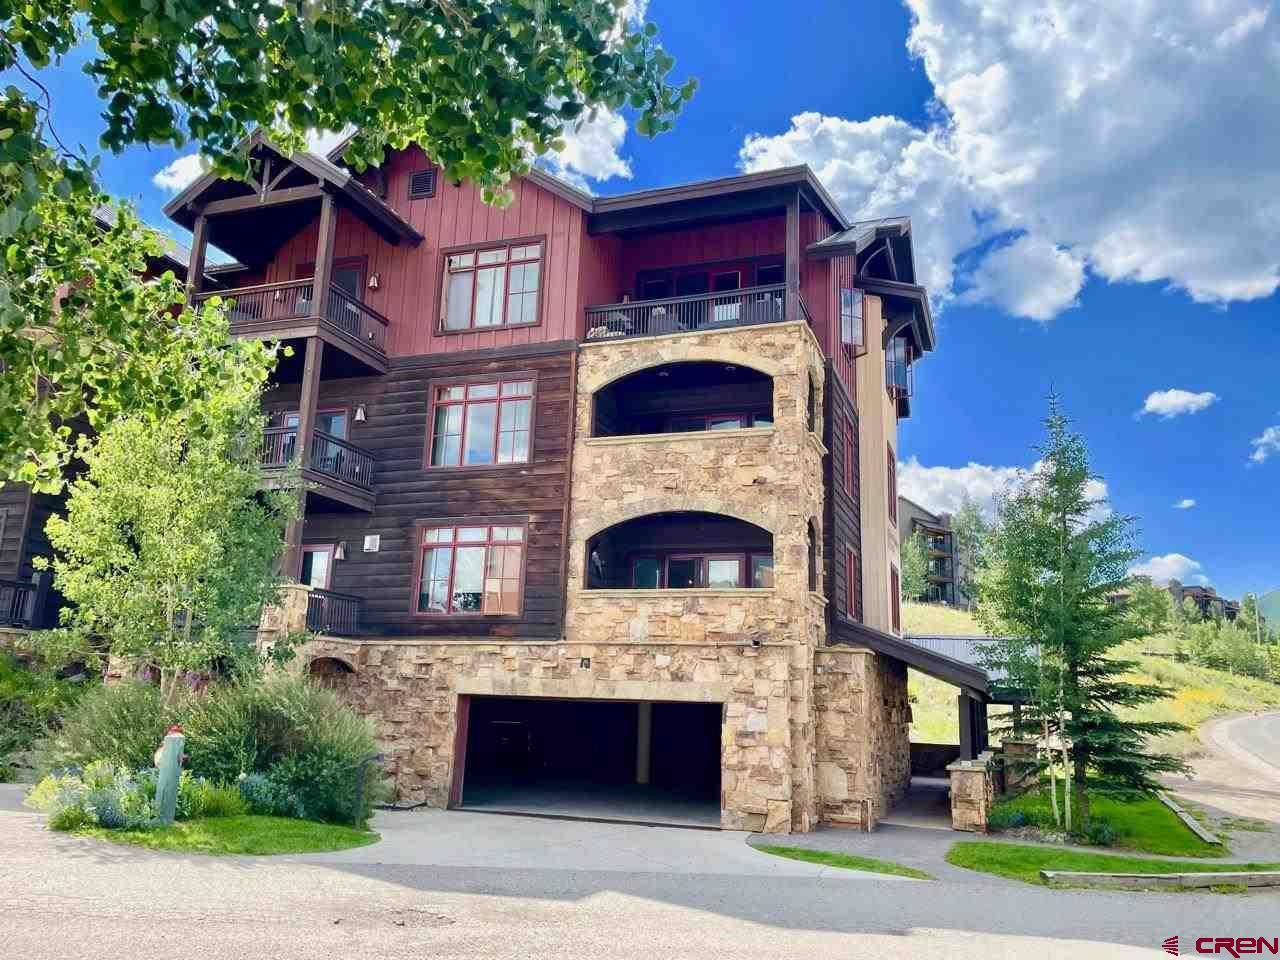 Photo of 621 Gothic Road, Mt. Crested Butte, CO 81225 (MLS # 784902)